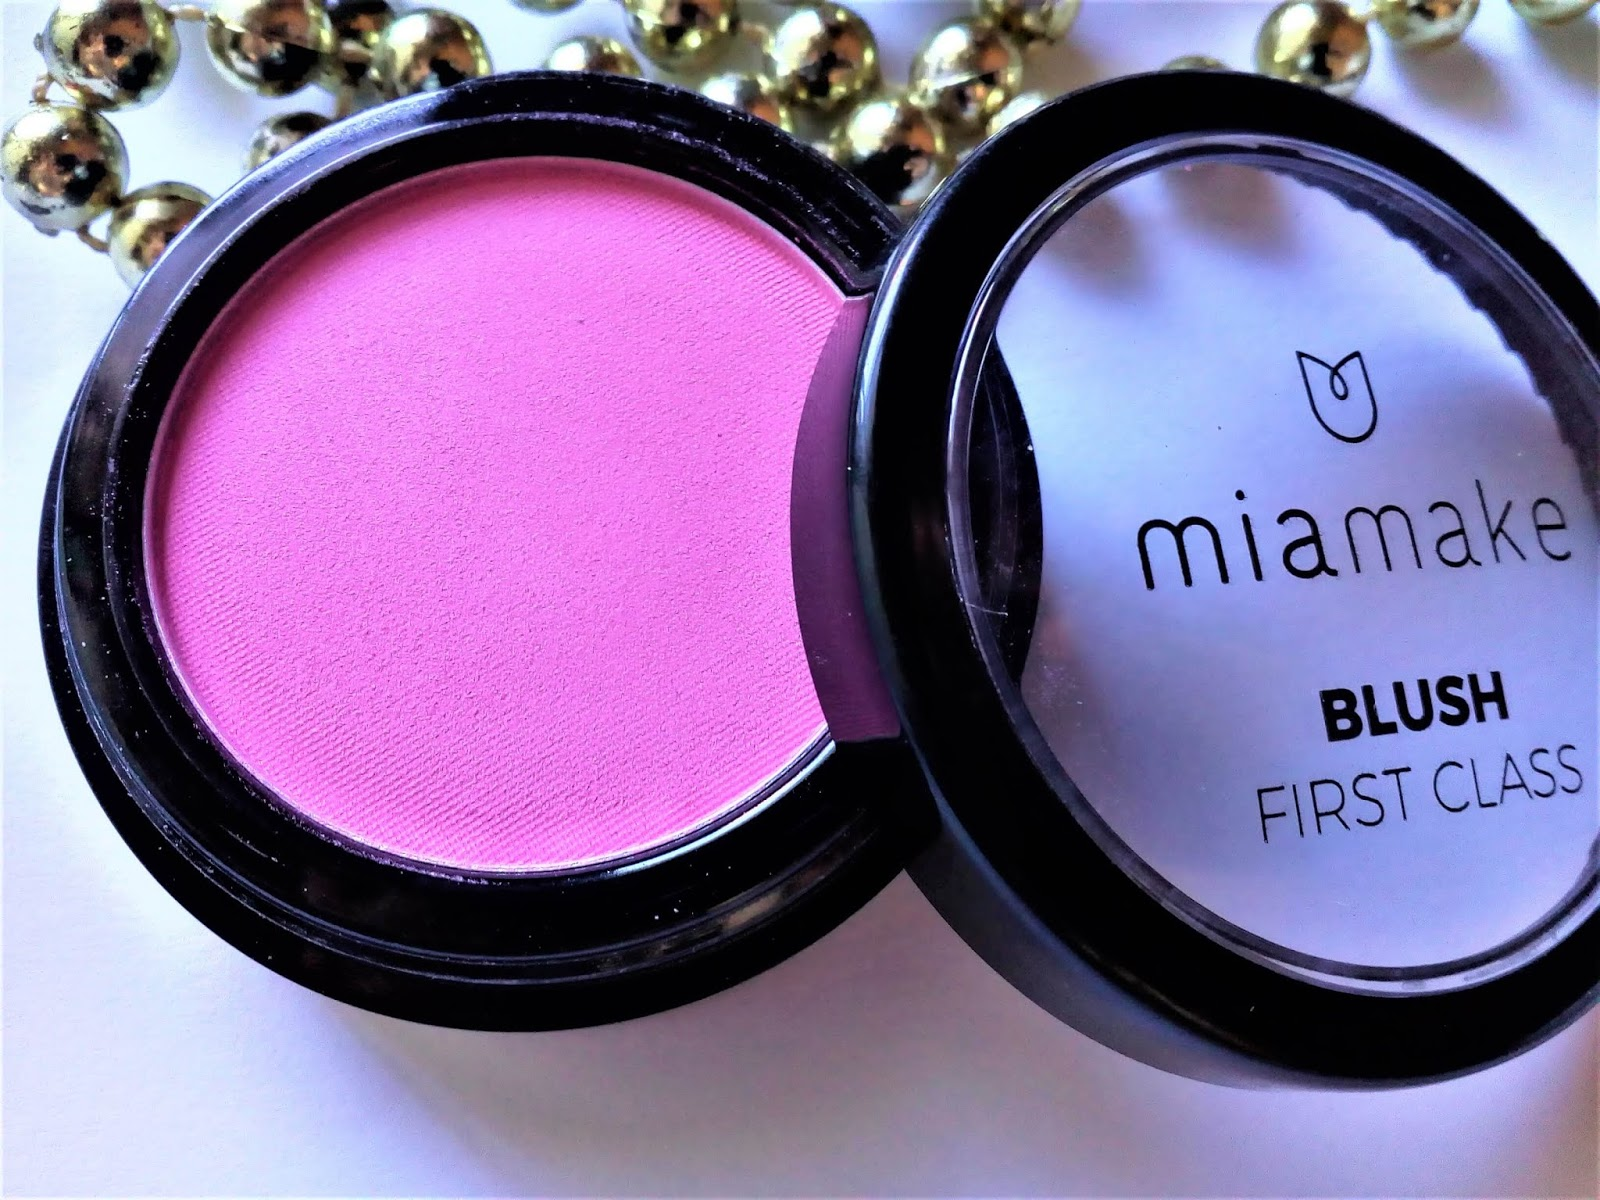 Resenha: Blush First Class da Mia Make